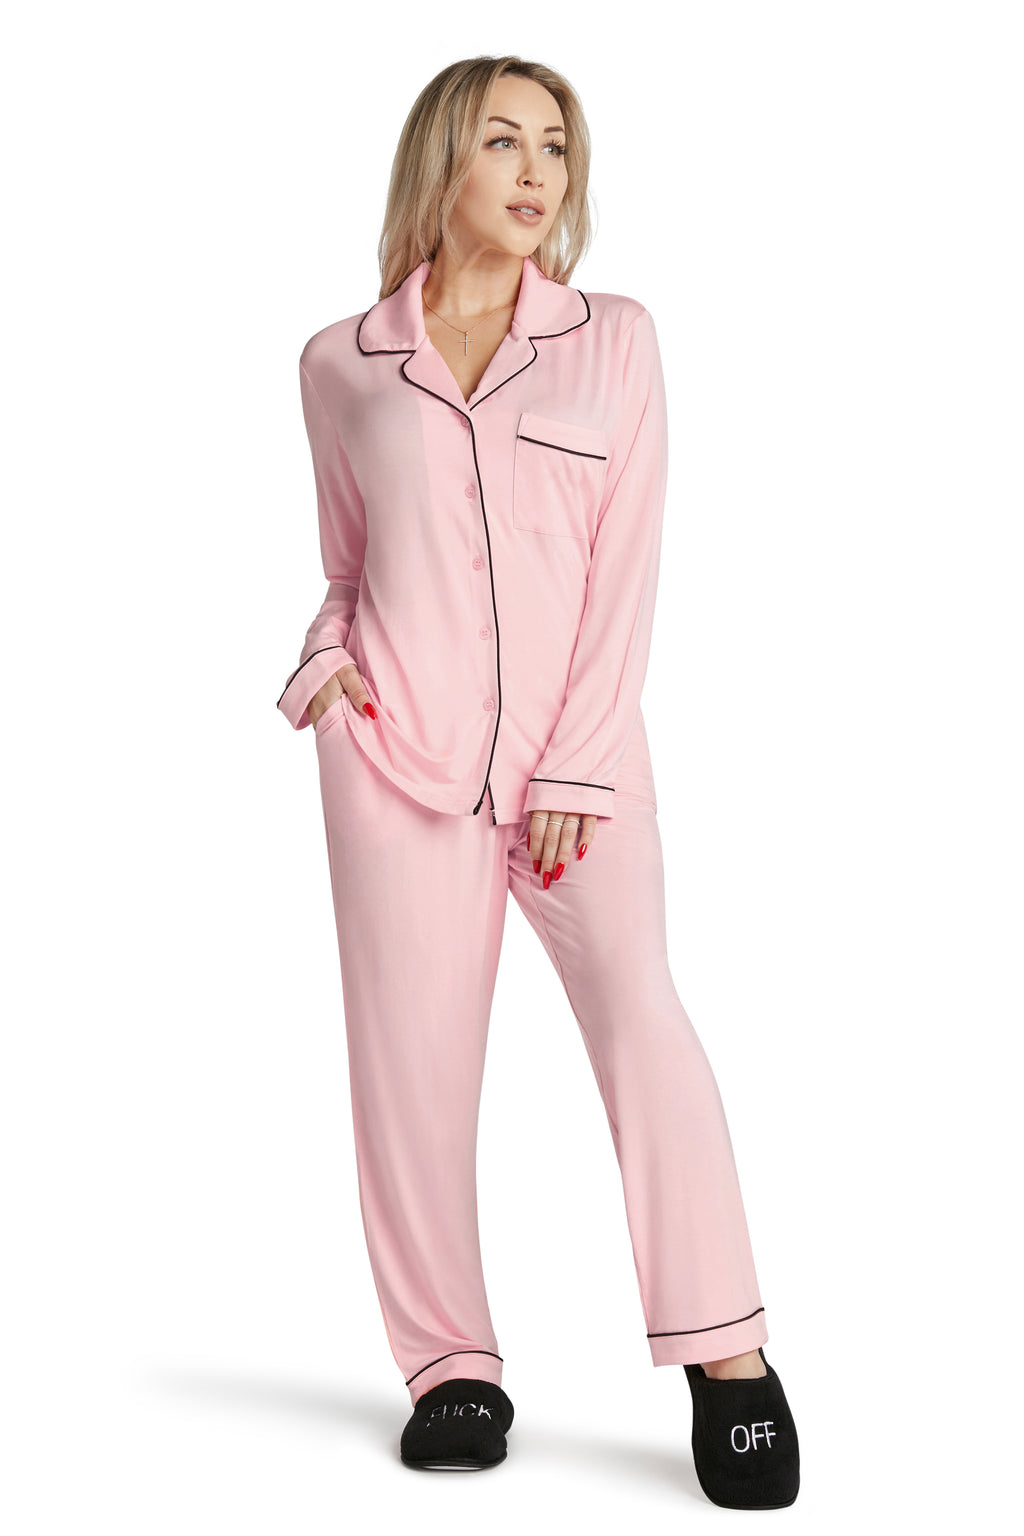 LIGHTWEIGHT PAJAMA SET - Fluent French (Pink)